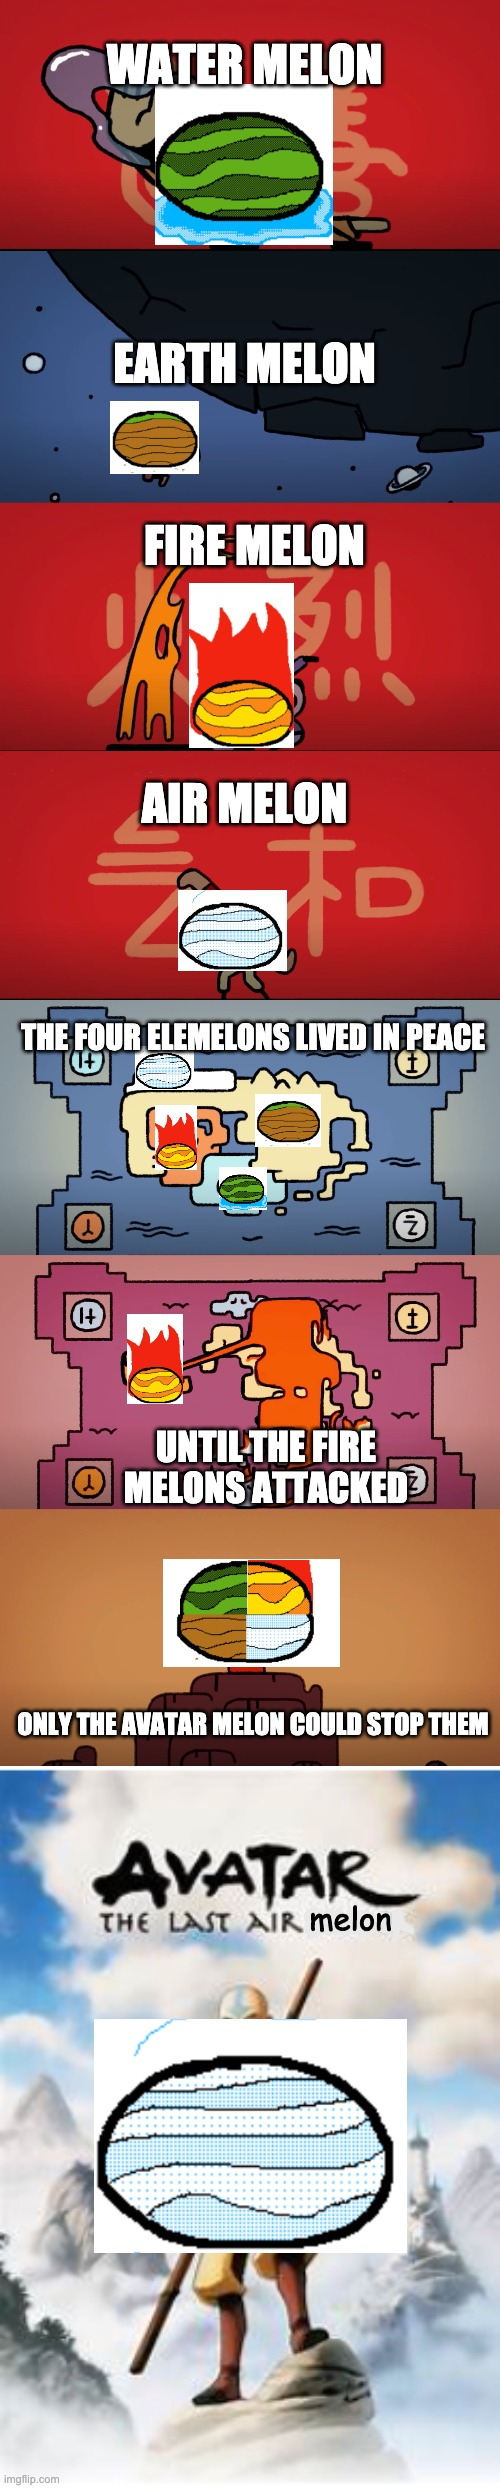 elemelons |  WATER MELON; EARTH MELON; FIRE MELON; AIR MELON; THE FOUR ELEMELONS LIVED IN PEACE; UNTIL THE FIRE MELONS ATTACKED; ONLY THE AVATAR MELON COULD STOP THEM; melon | image tagged in avatar the last airbender,melons,memes | made w/ Imgflip meme maker